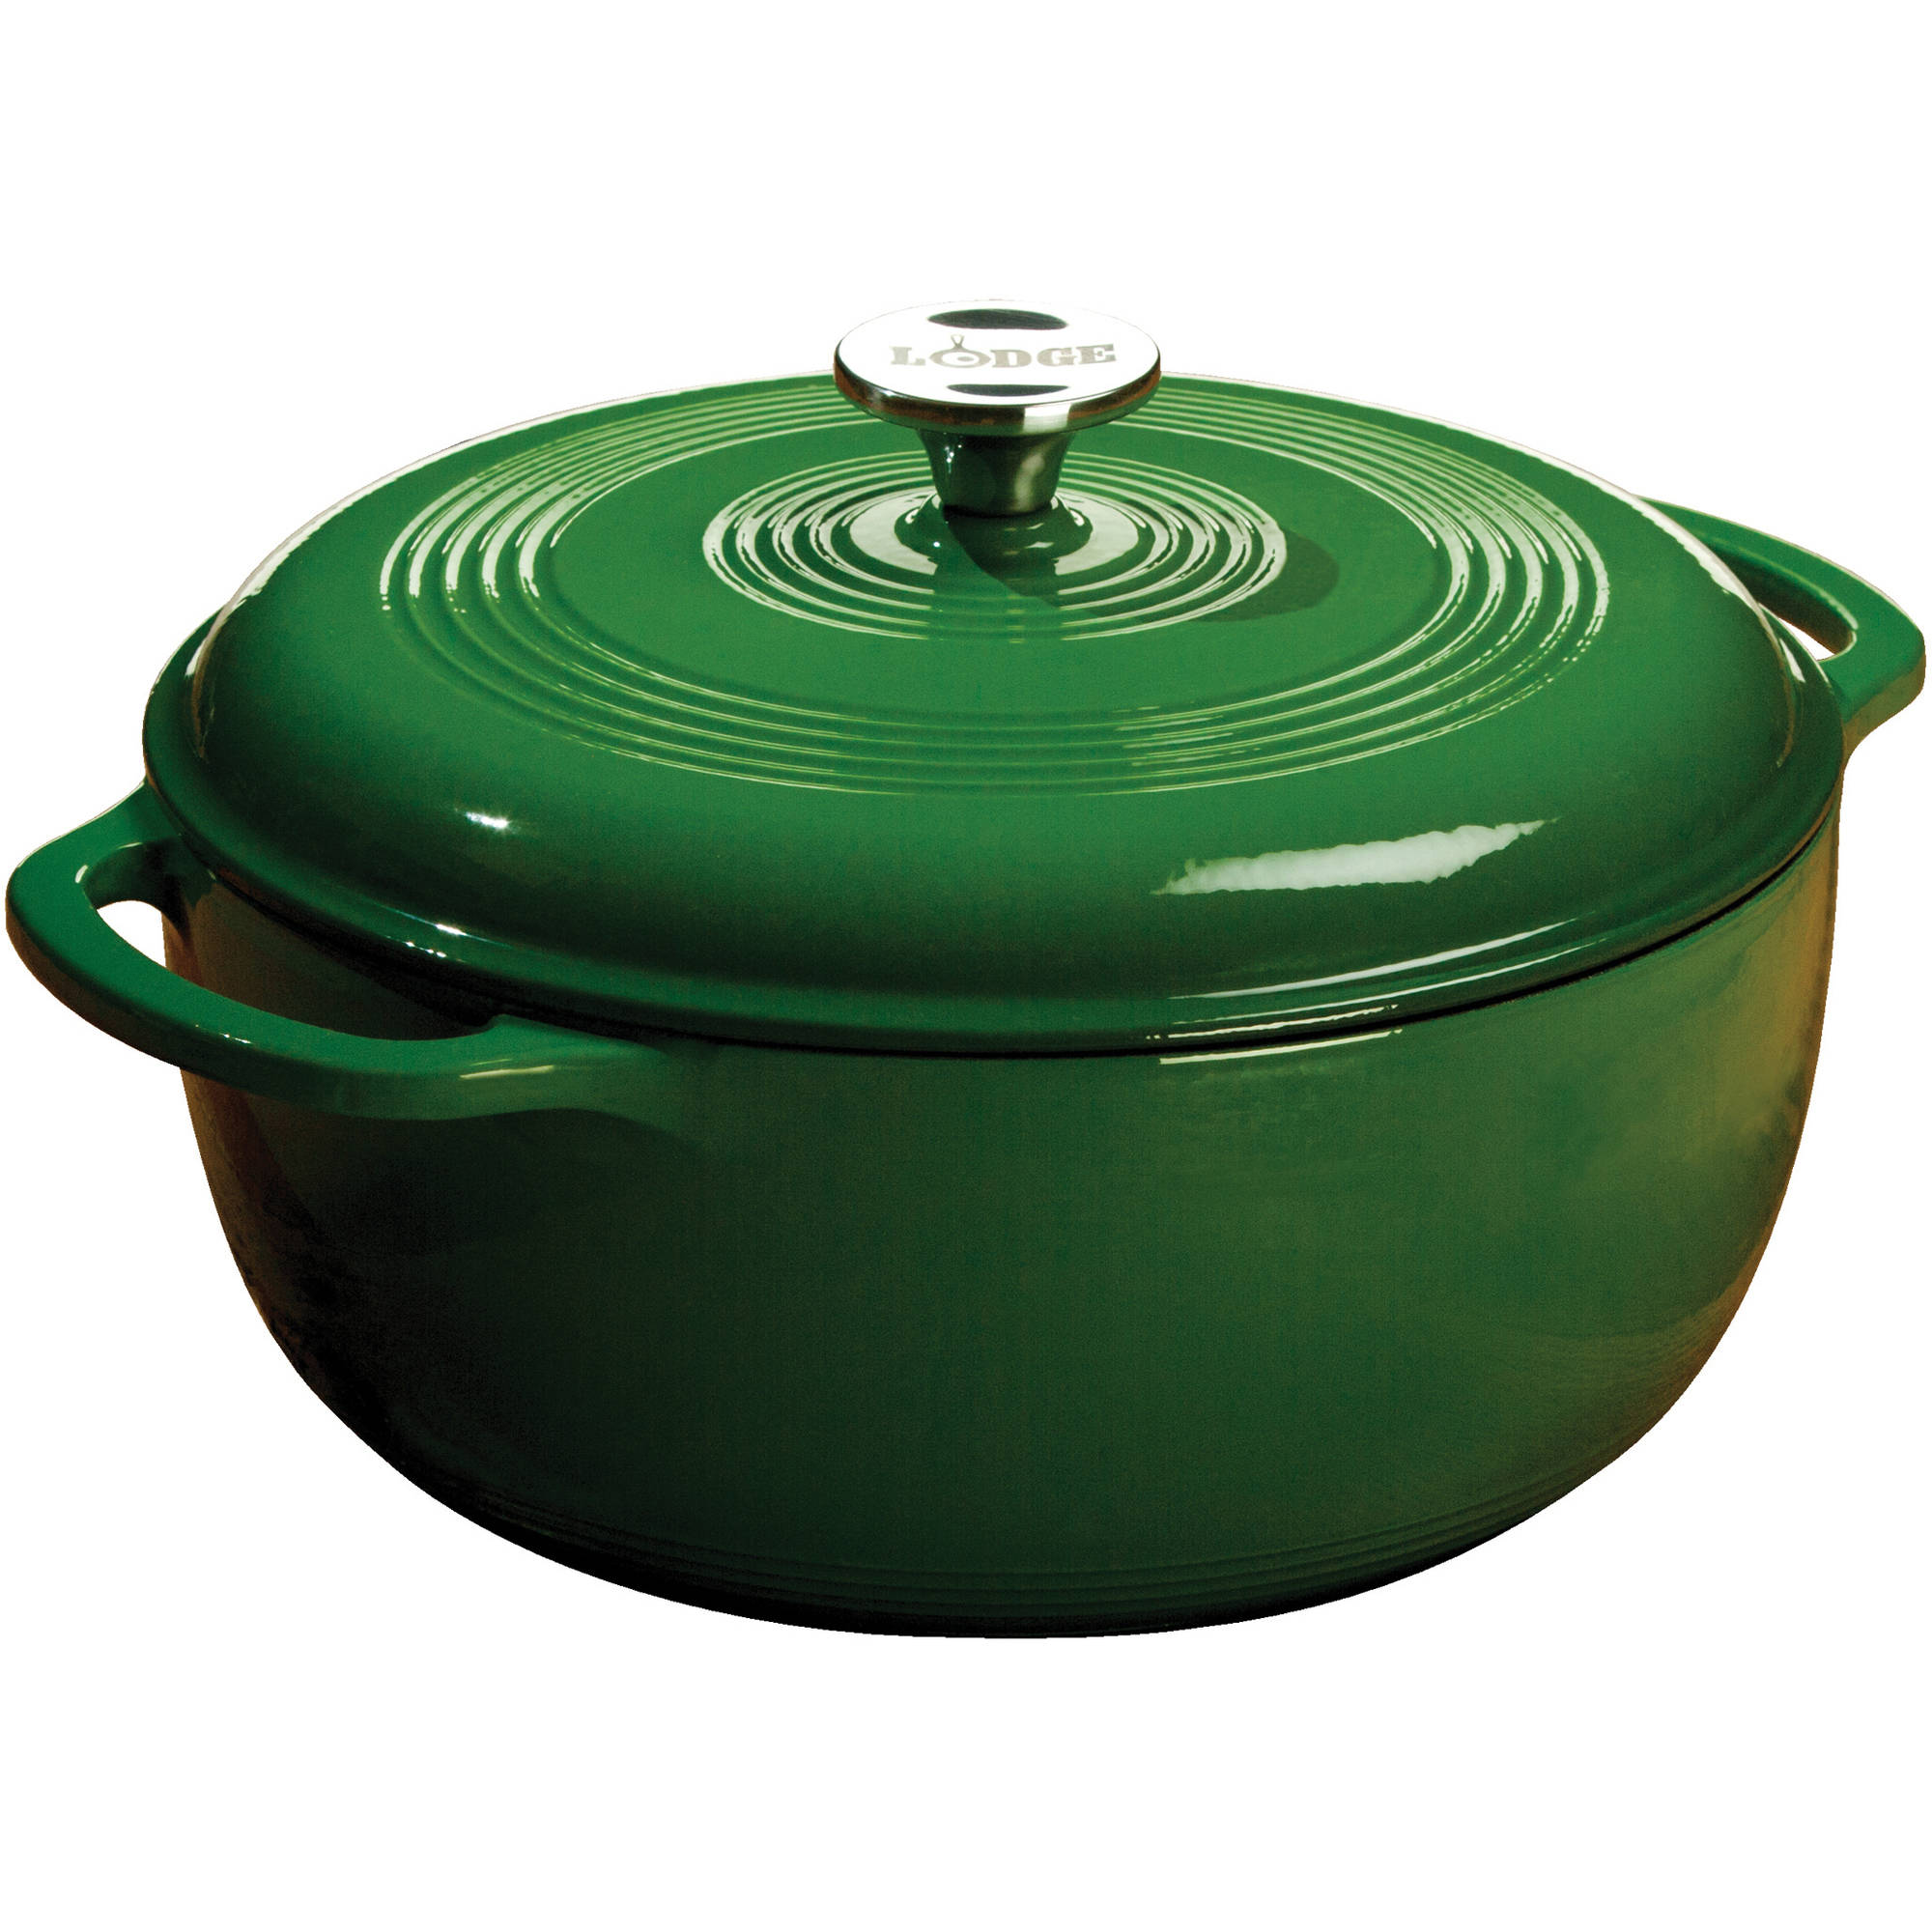 lodge enameled cast iron 6 quart dutch oven green ec6d53 walmartcom - Staub Dutch Oven